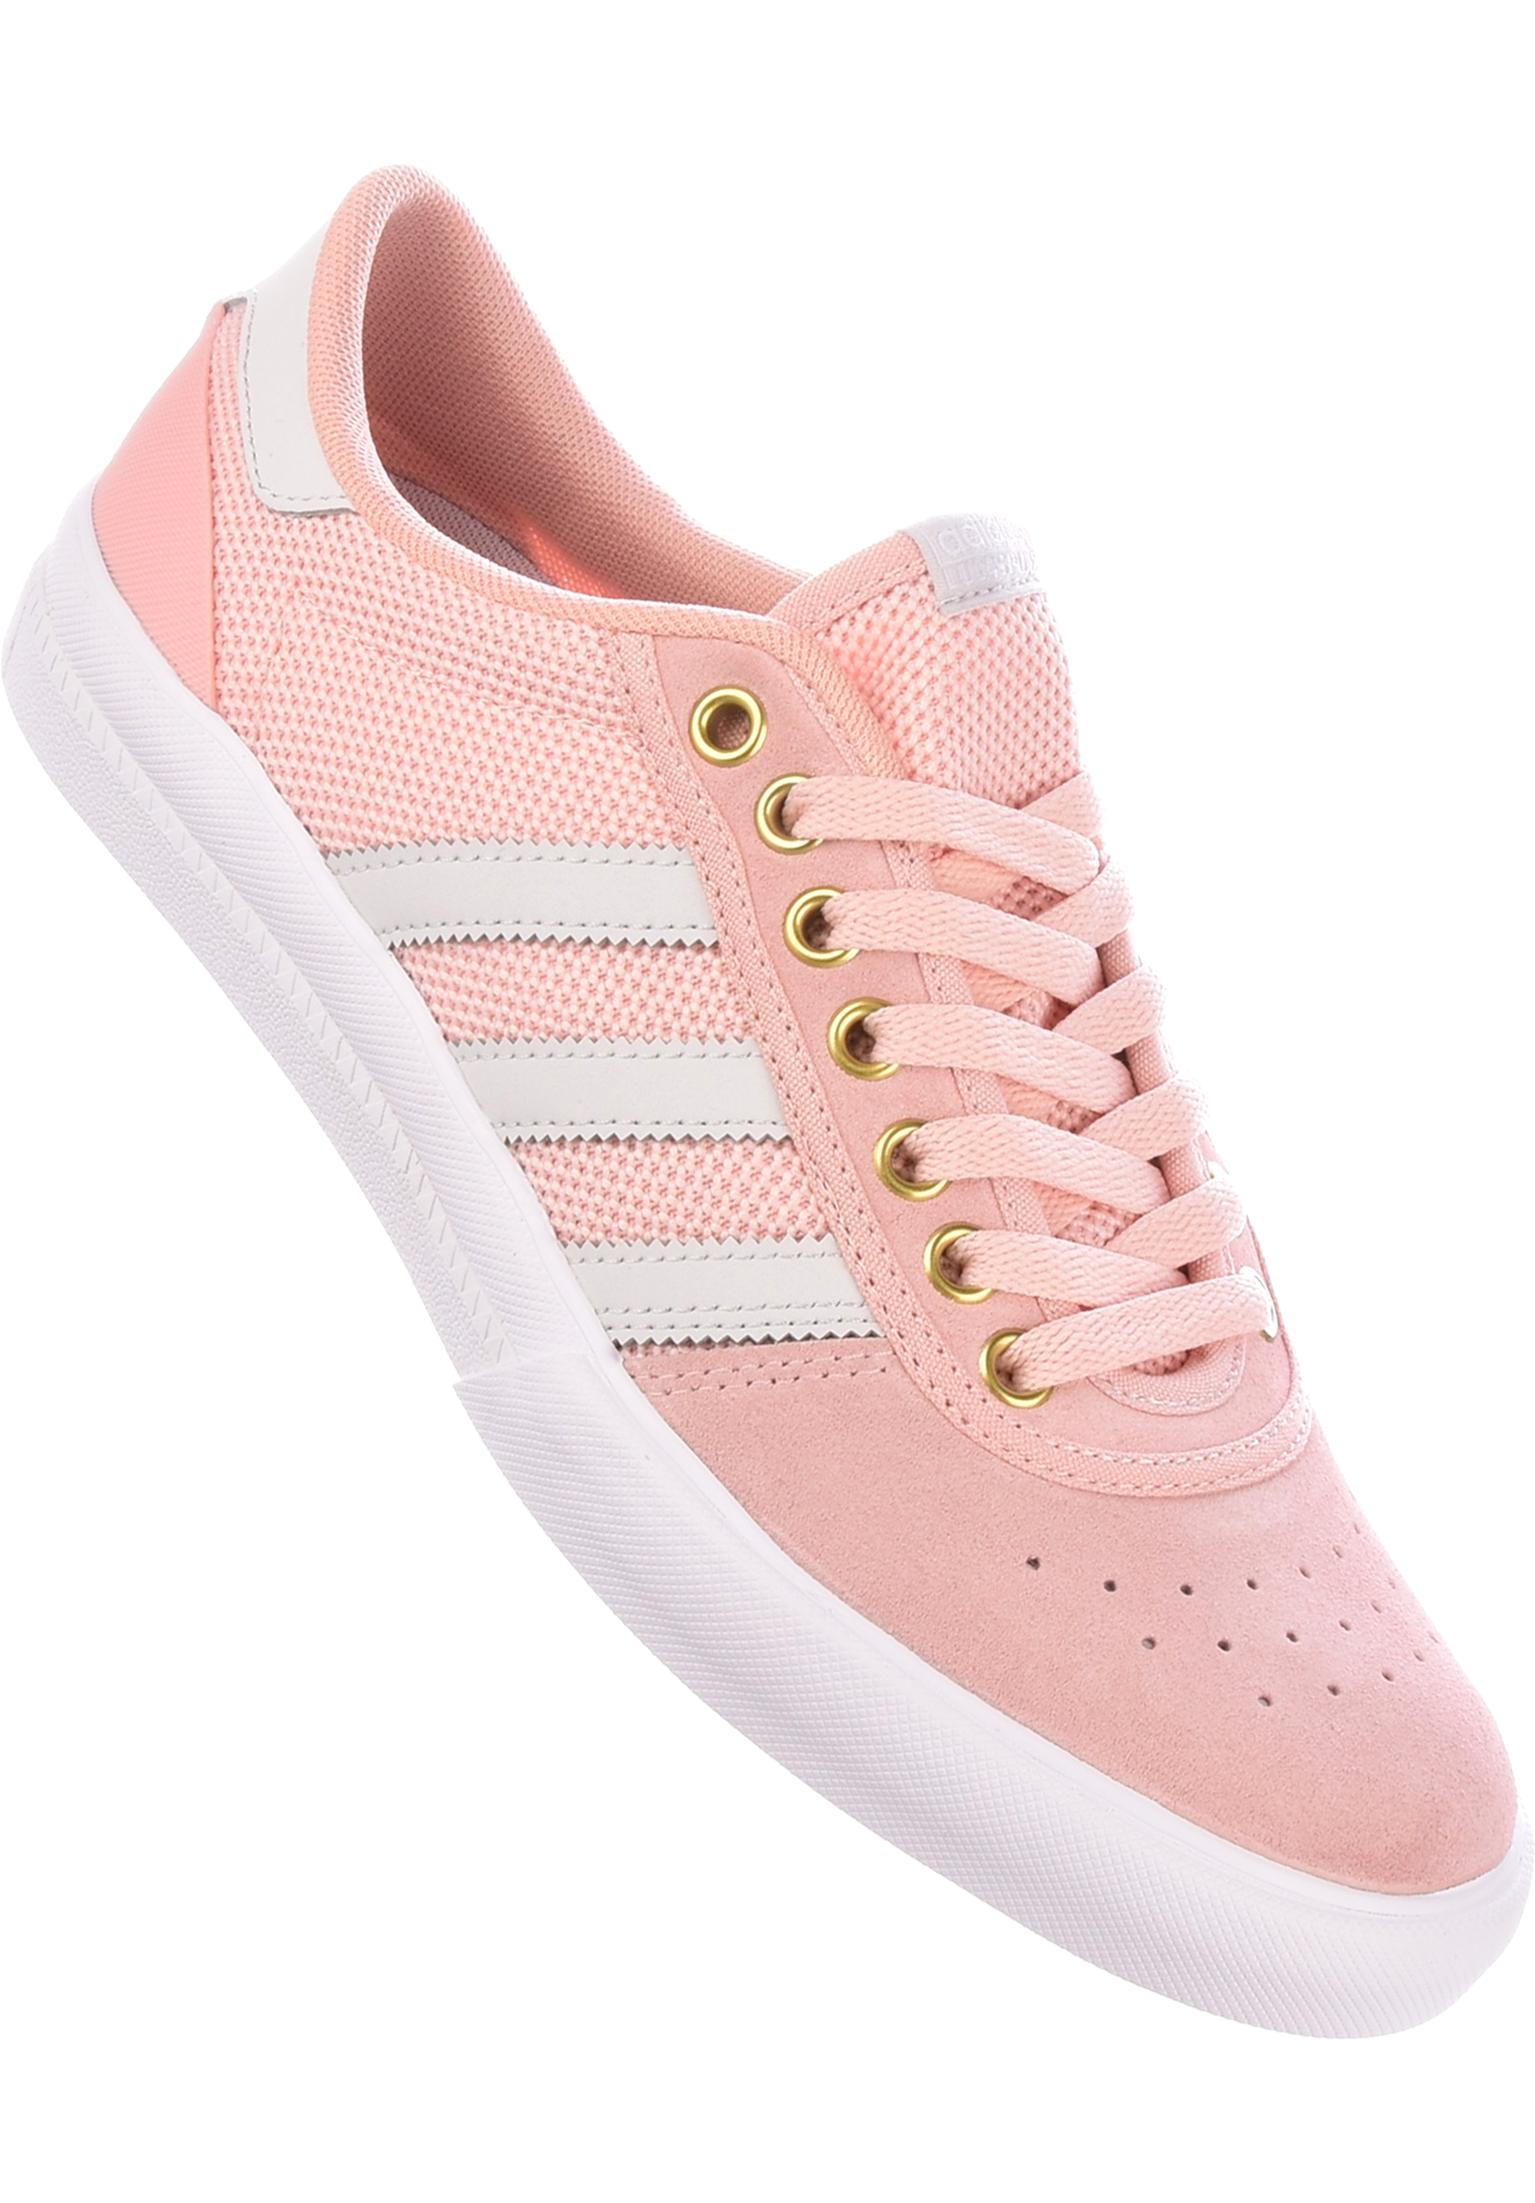 1984cc2b6e4 Lucas Premiere adidas-skateboarding All Shoes in vapourpink-grey for Men